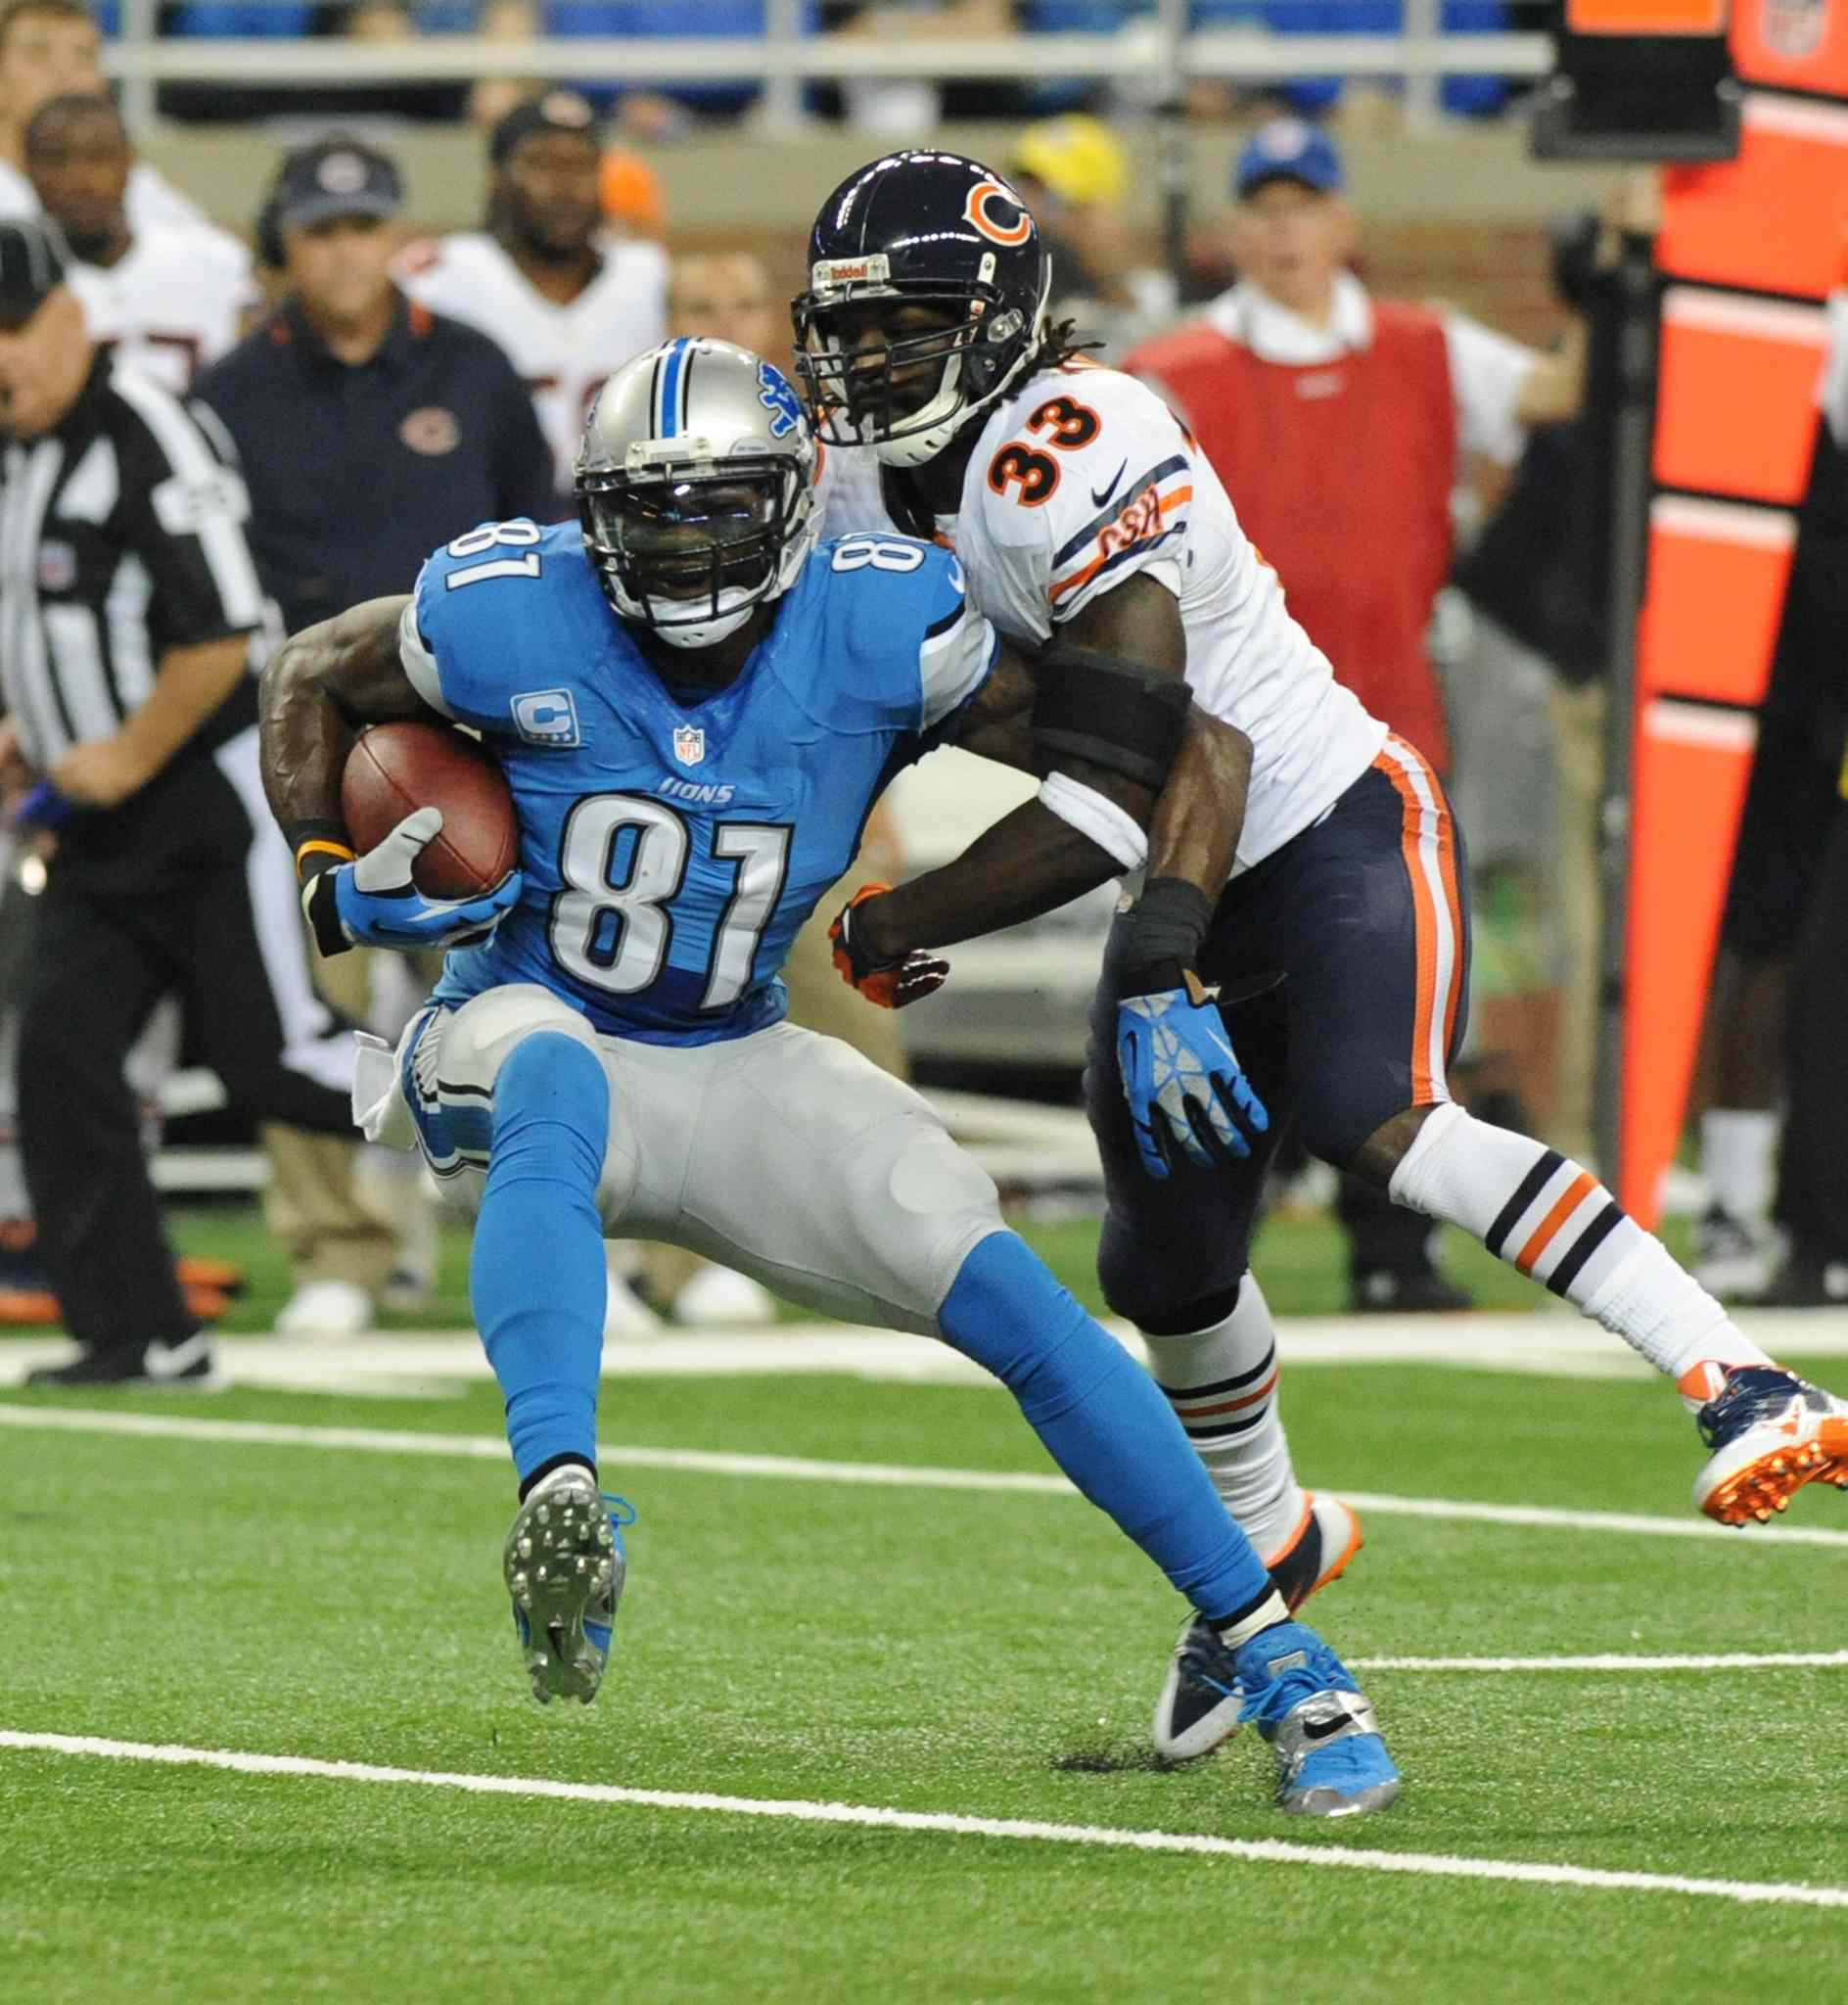 Detroit Lions wide receiver Calvin Johnson (left) makes a reception in front of Chicago Bears cornerback Charles Tillman during the first quarter of the Lions' 40-32 win at Ford Field in Detroit, Sunday.